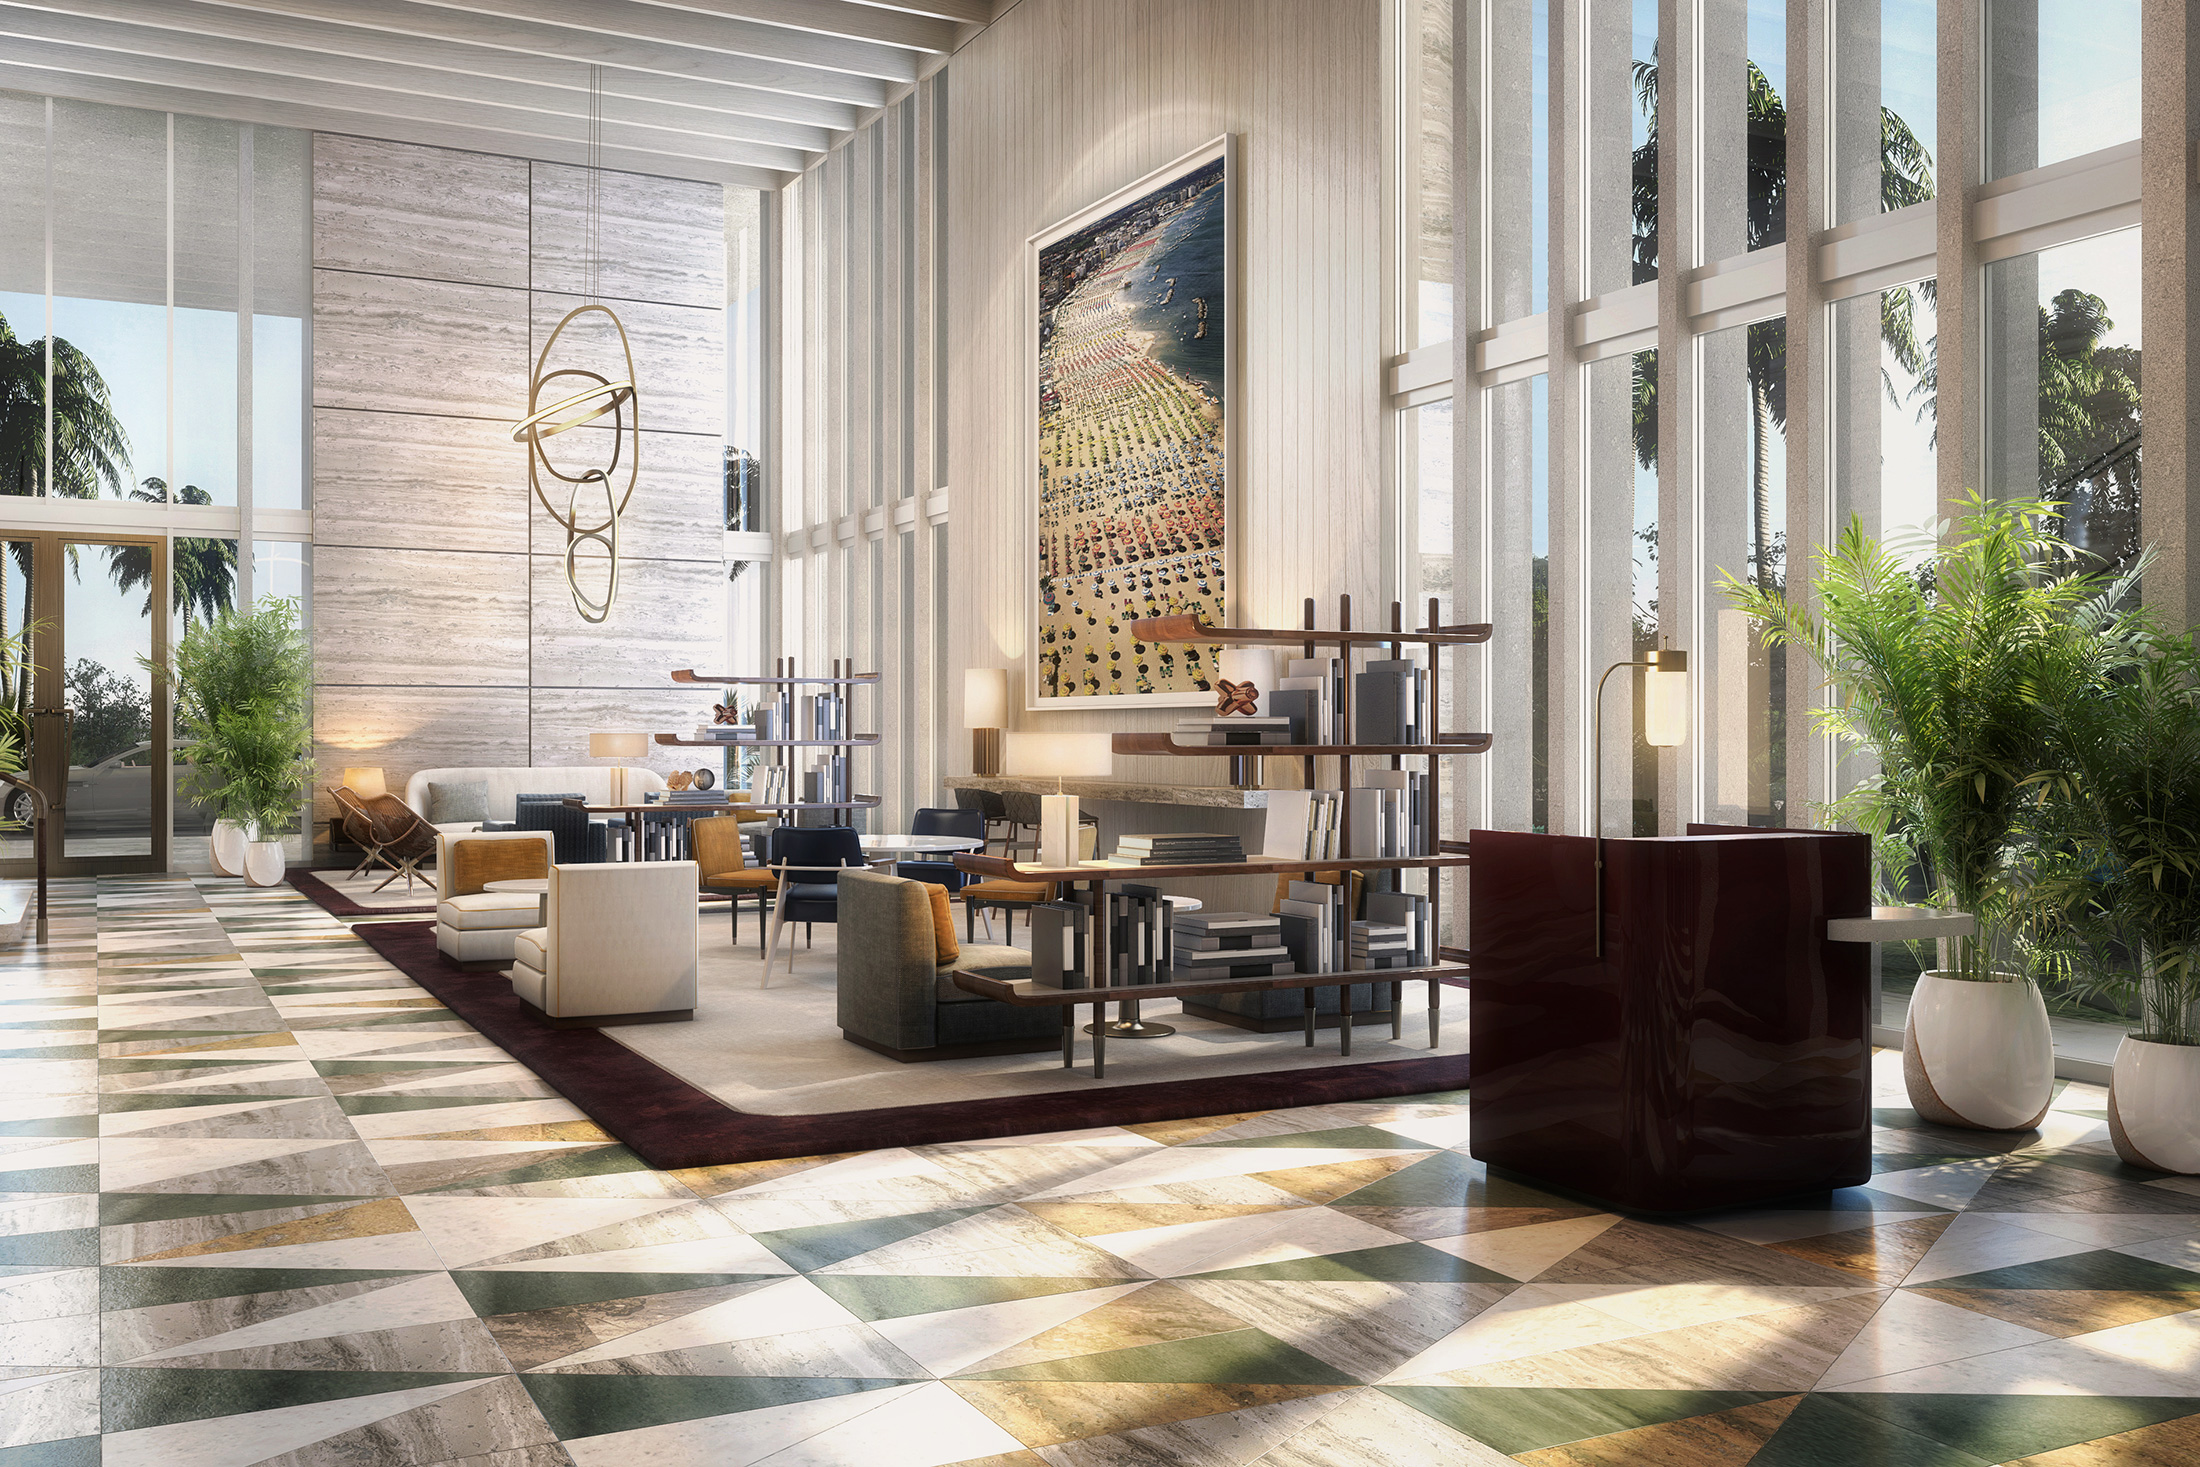 A rendering of the lobby at Four Seasons Fort Lauderdale. (Image: Courtesy Four Seasons)